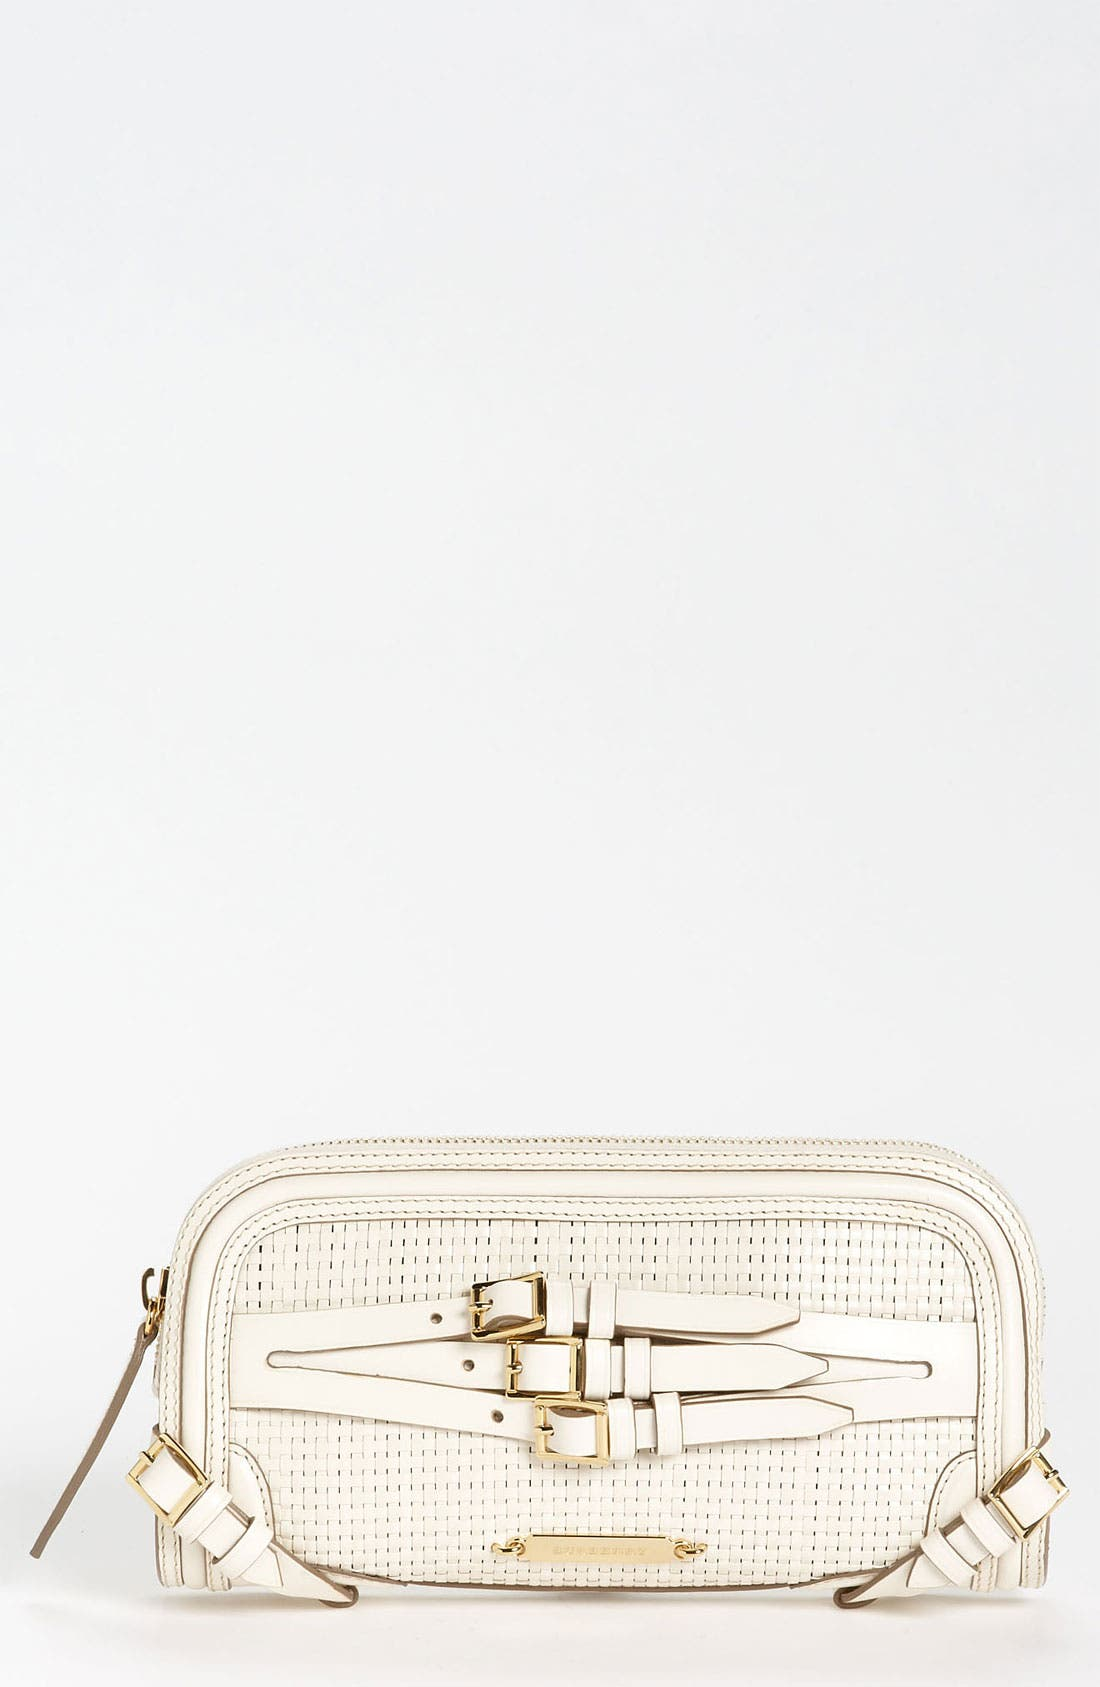 Main Image - Burberry 'Bridle' Woven Leather Clutch